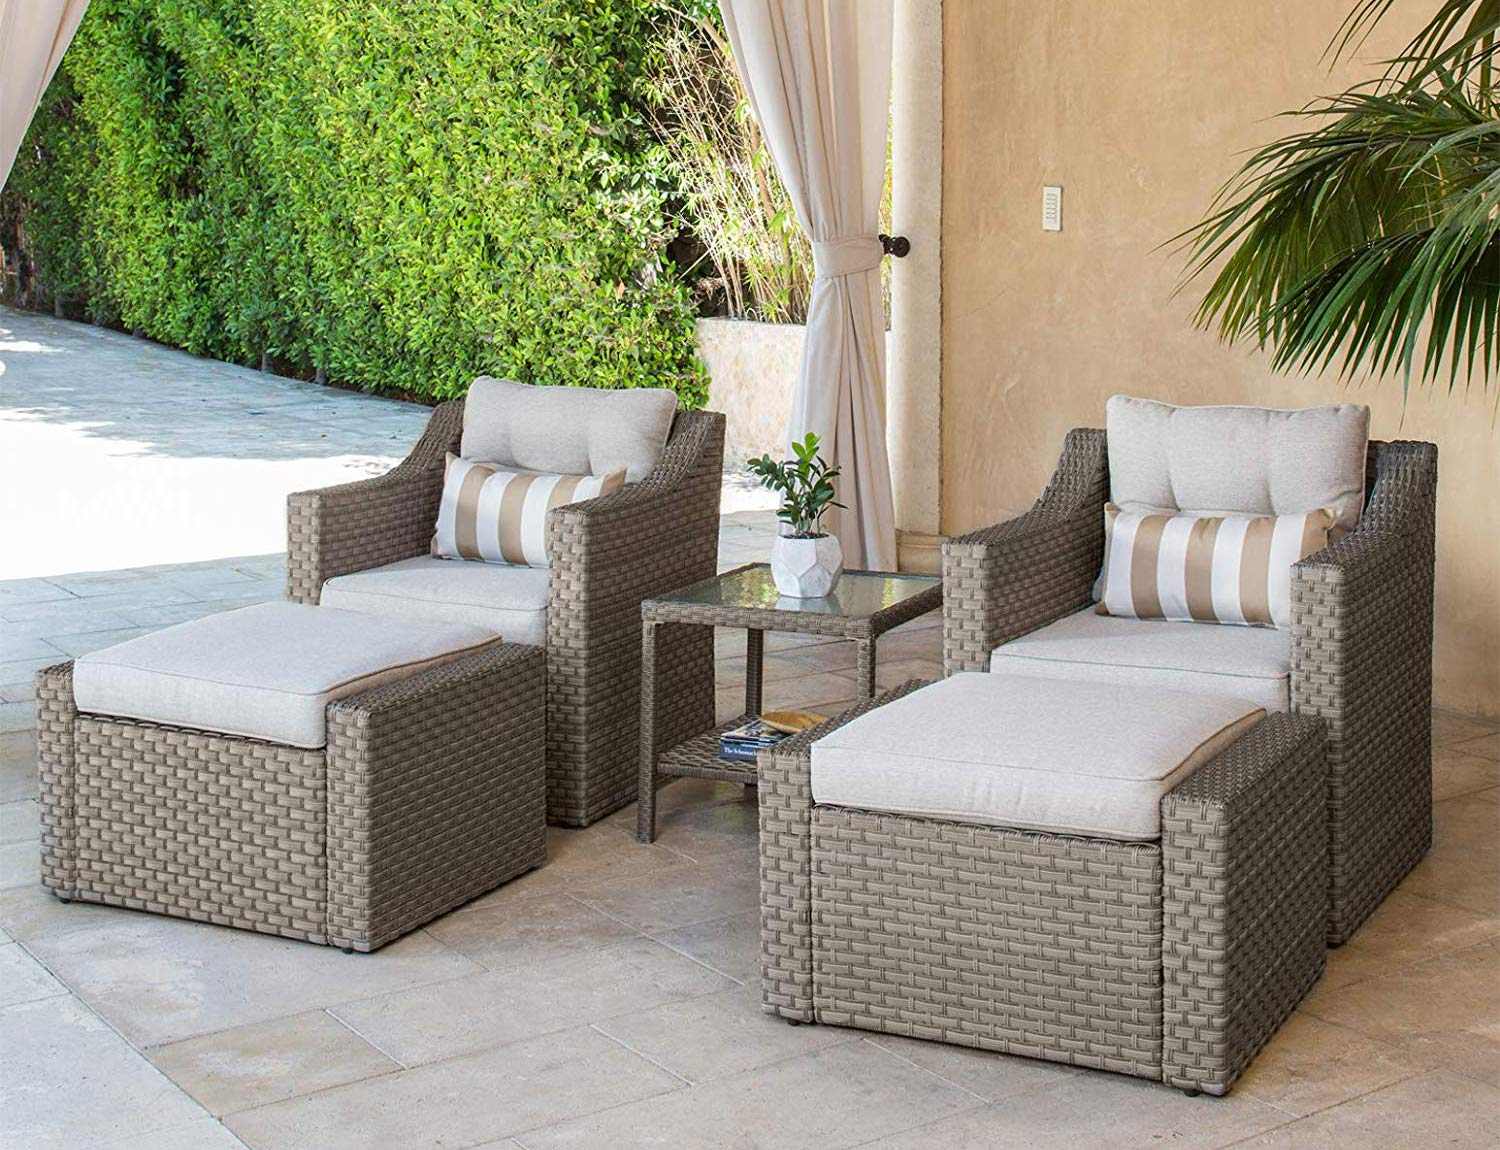 SOLAURA Patio Sofa Sets 5-piece Outdoor Furniture Set Gray Wicker Lounge Chair & Ottoman with neutral Beige Olefin Fiber Cushions &Glass Coffee side Table